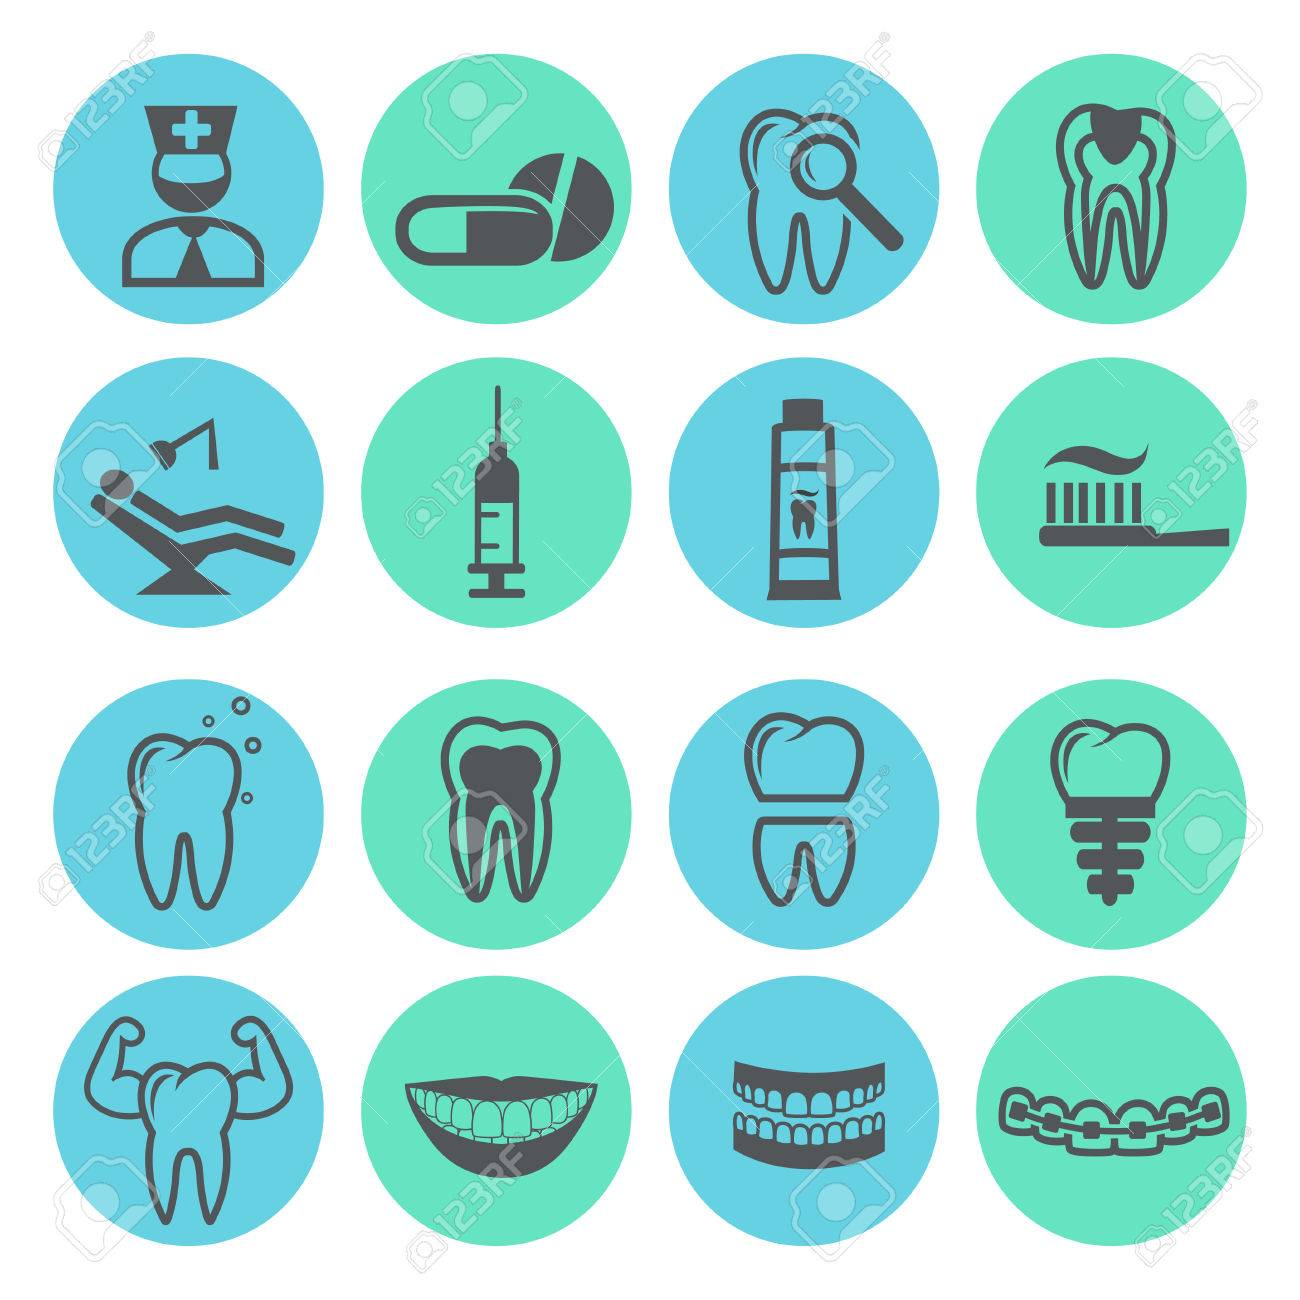 Dental Icons Royalty Free Cliparts, Vectors, And Stock ...